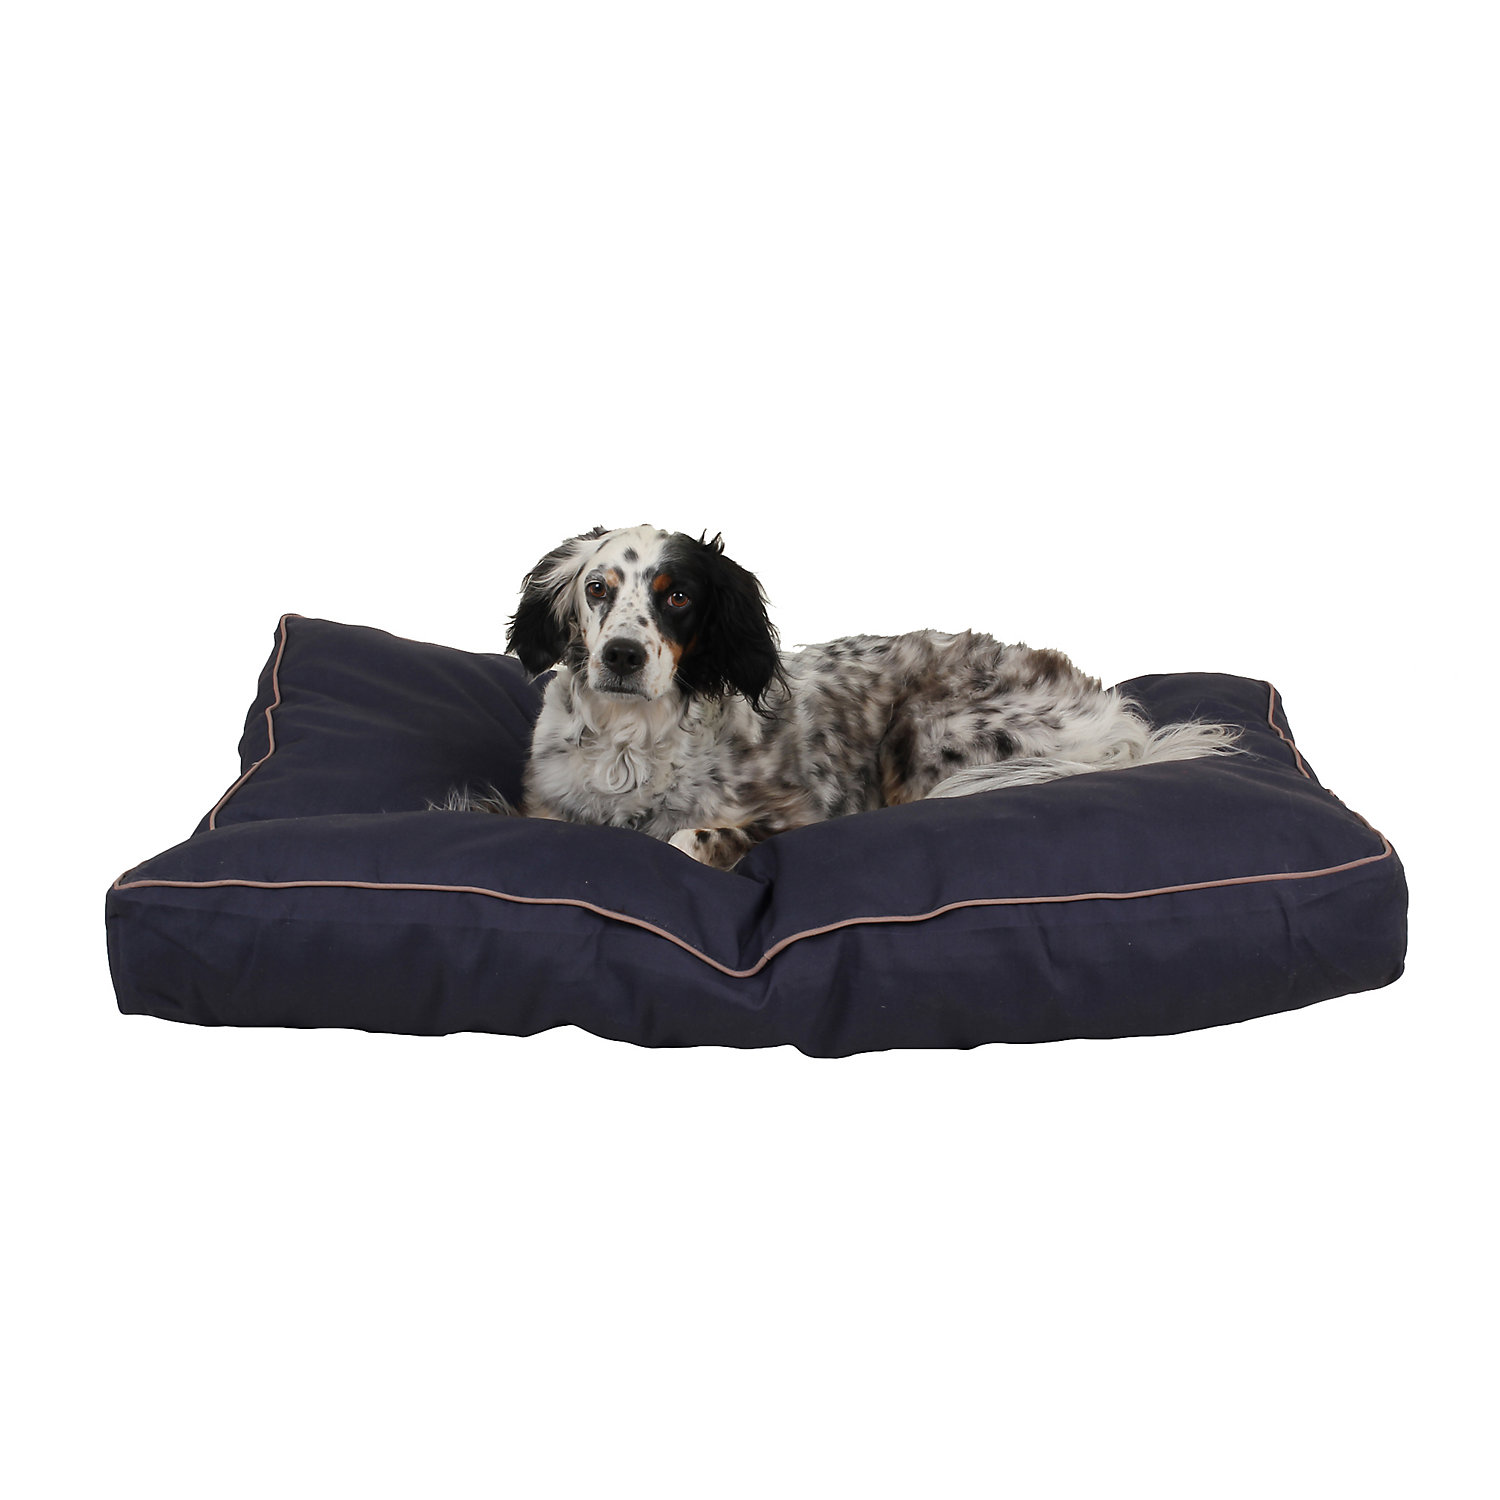 "Carolina Pet Company Indoor Outdoor Jamison Blue Faux Gusset Dog Bed, 42"" L X 30"" W X 4"" H, Medium"